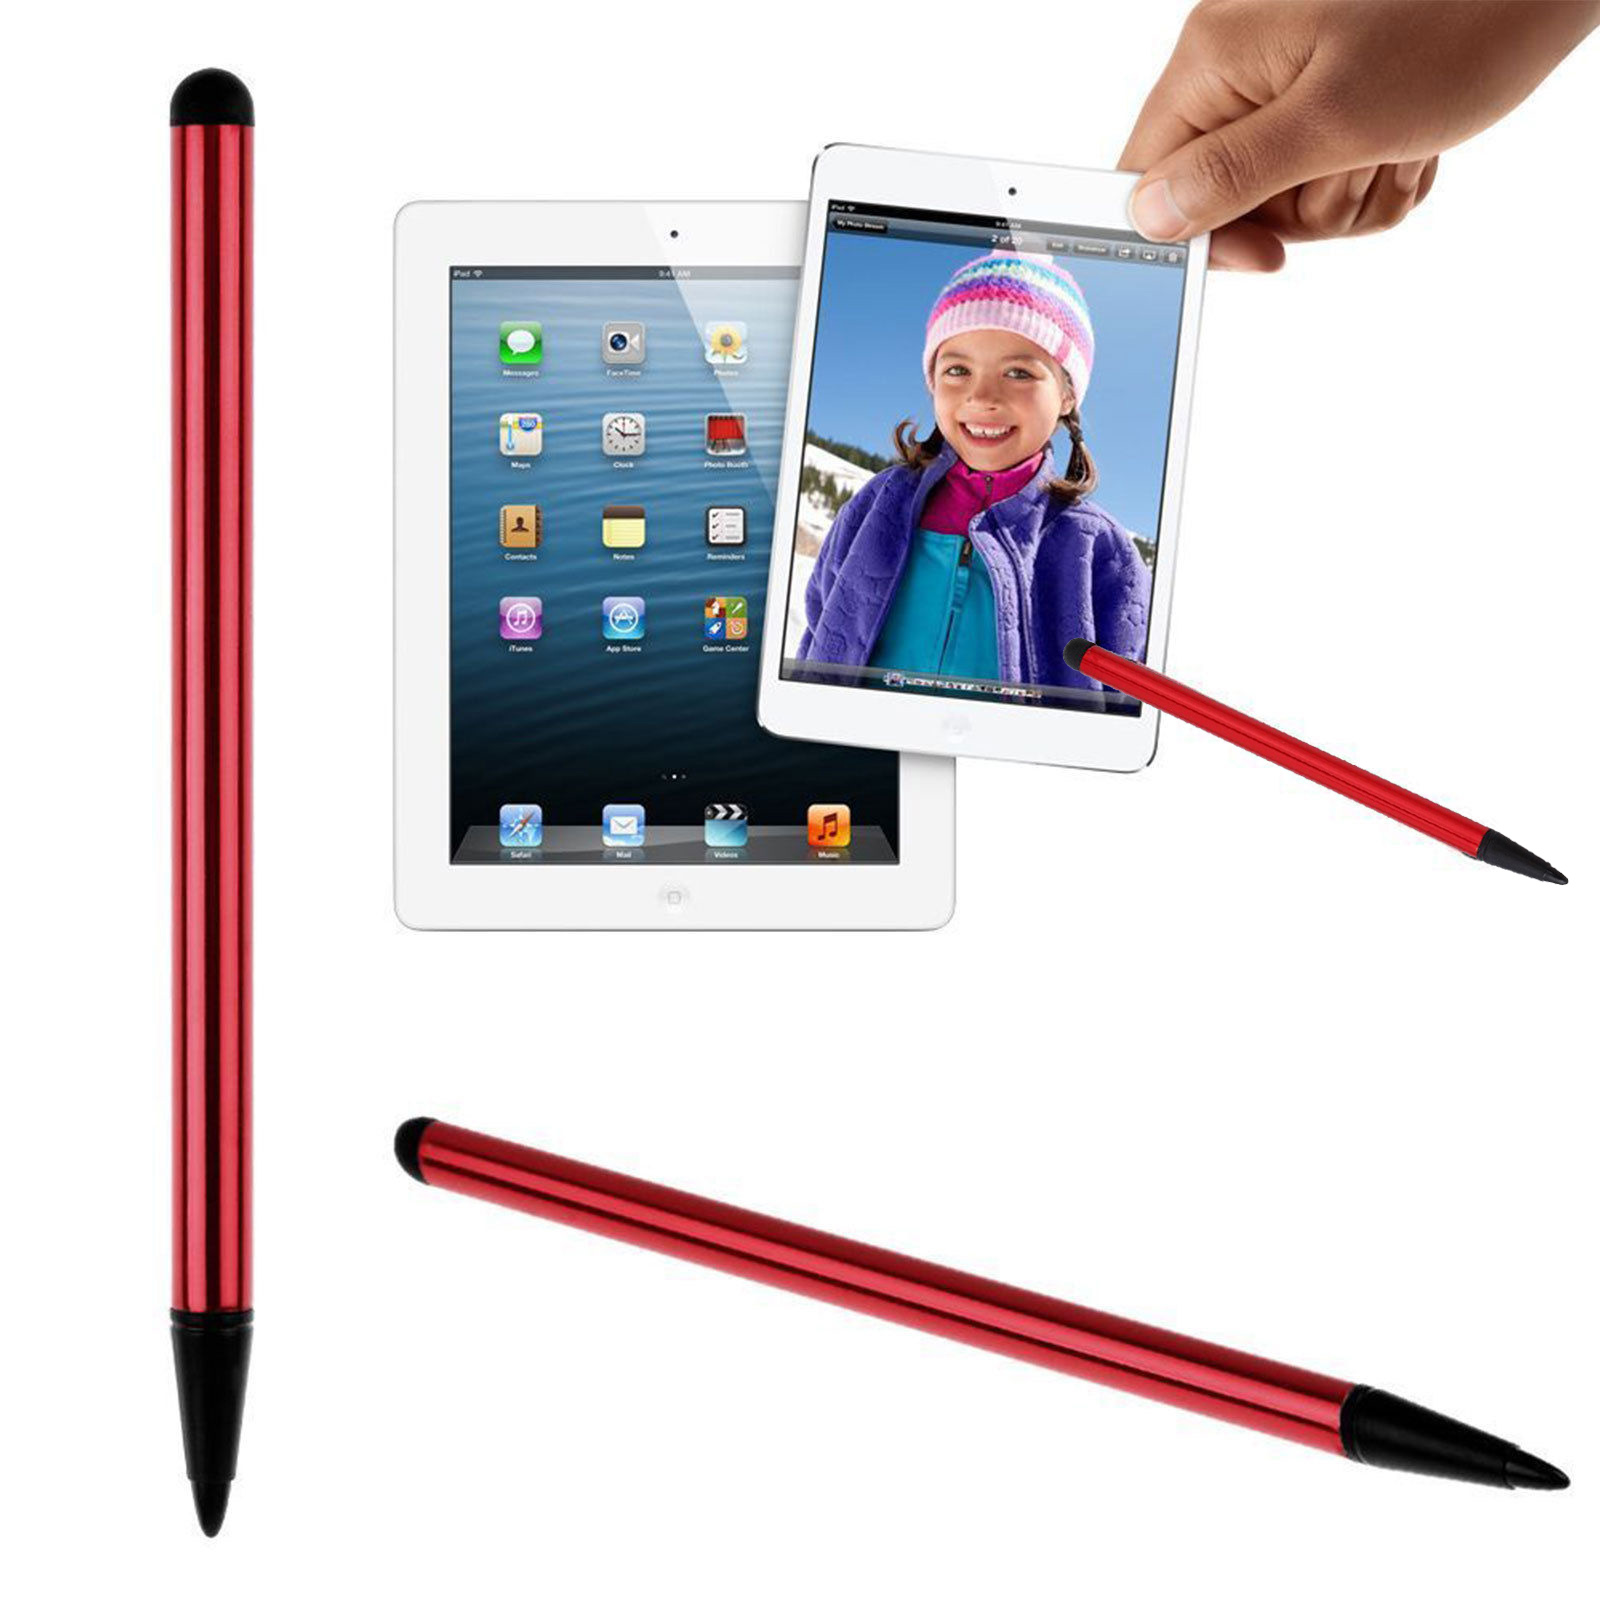 2-in-1-Touch-Screen-Pen-Stylus-Universal-For-iPhone-iPad-Samsung-Tablet-Phone-PC